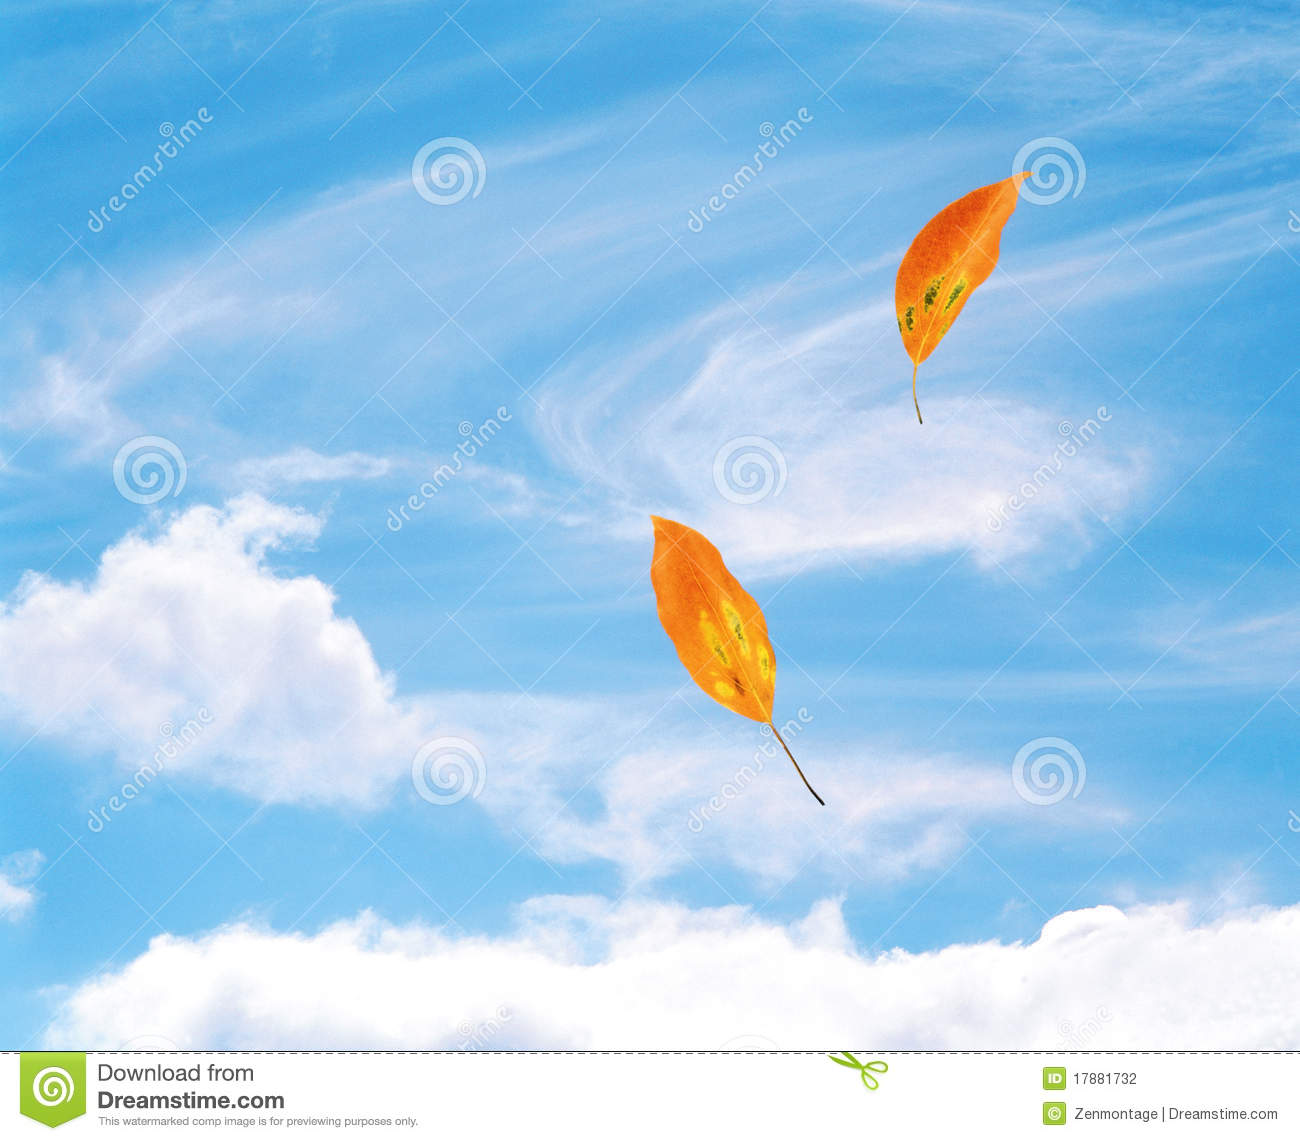 Leaves Blowing in the Wind